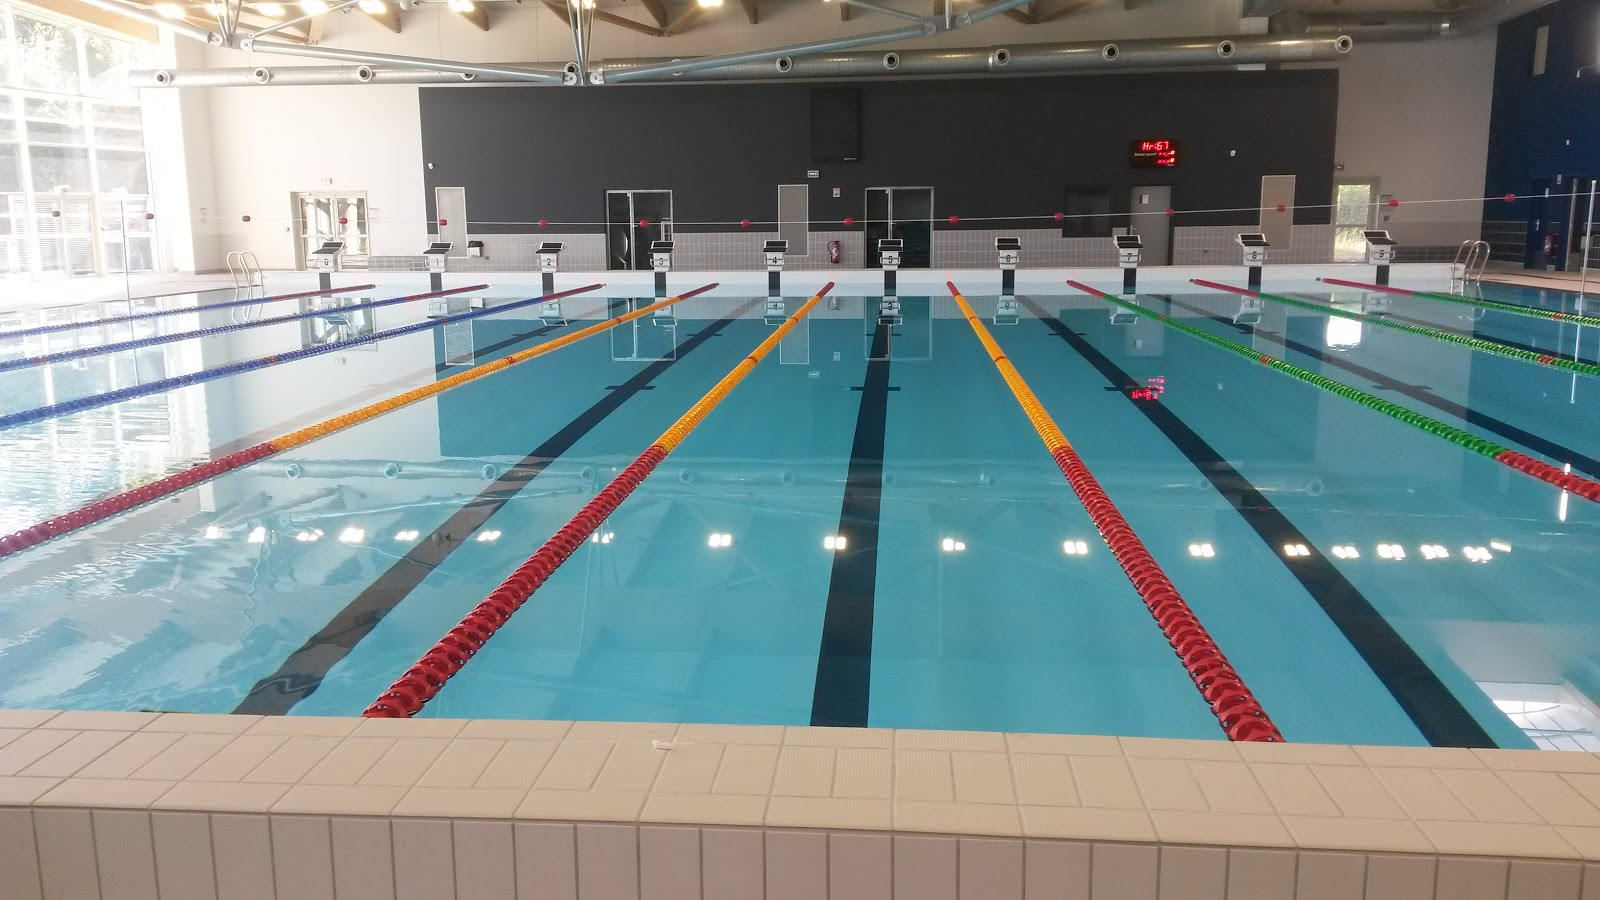 Ccldunkerque petite synthe - Piscine petite synthe ...